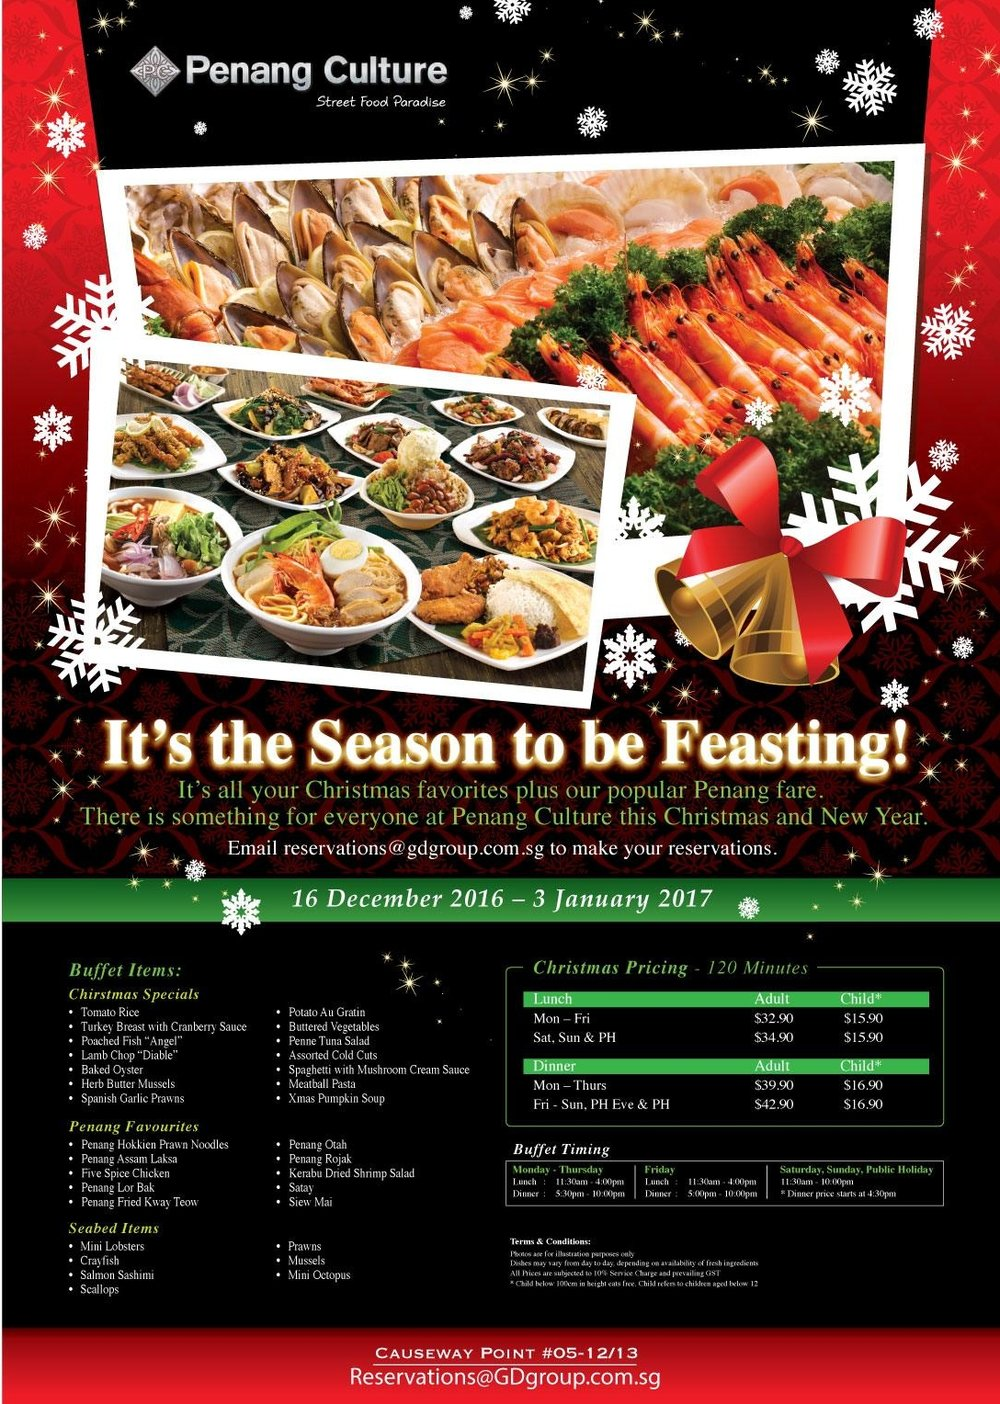 PSB Christmas Menu 2016.jpg